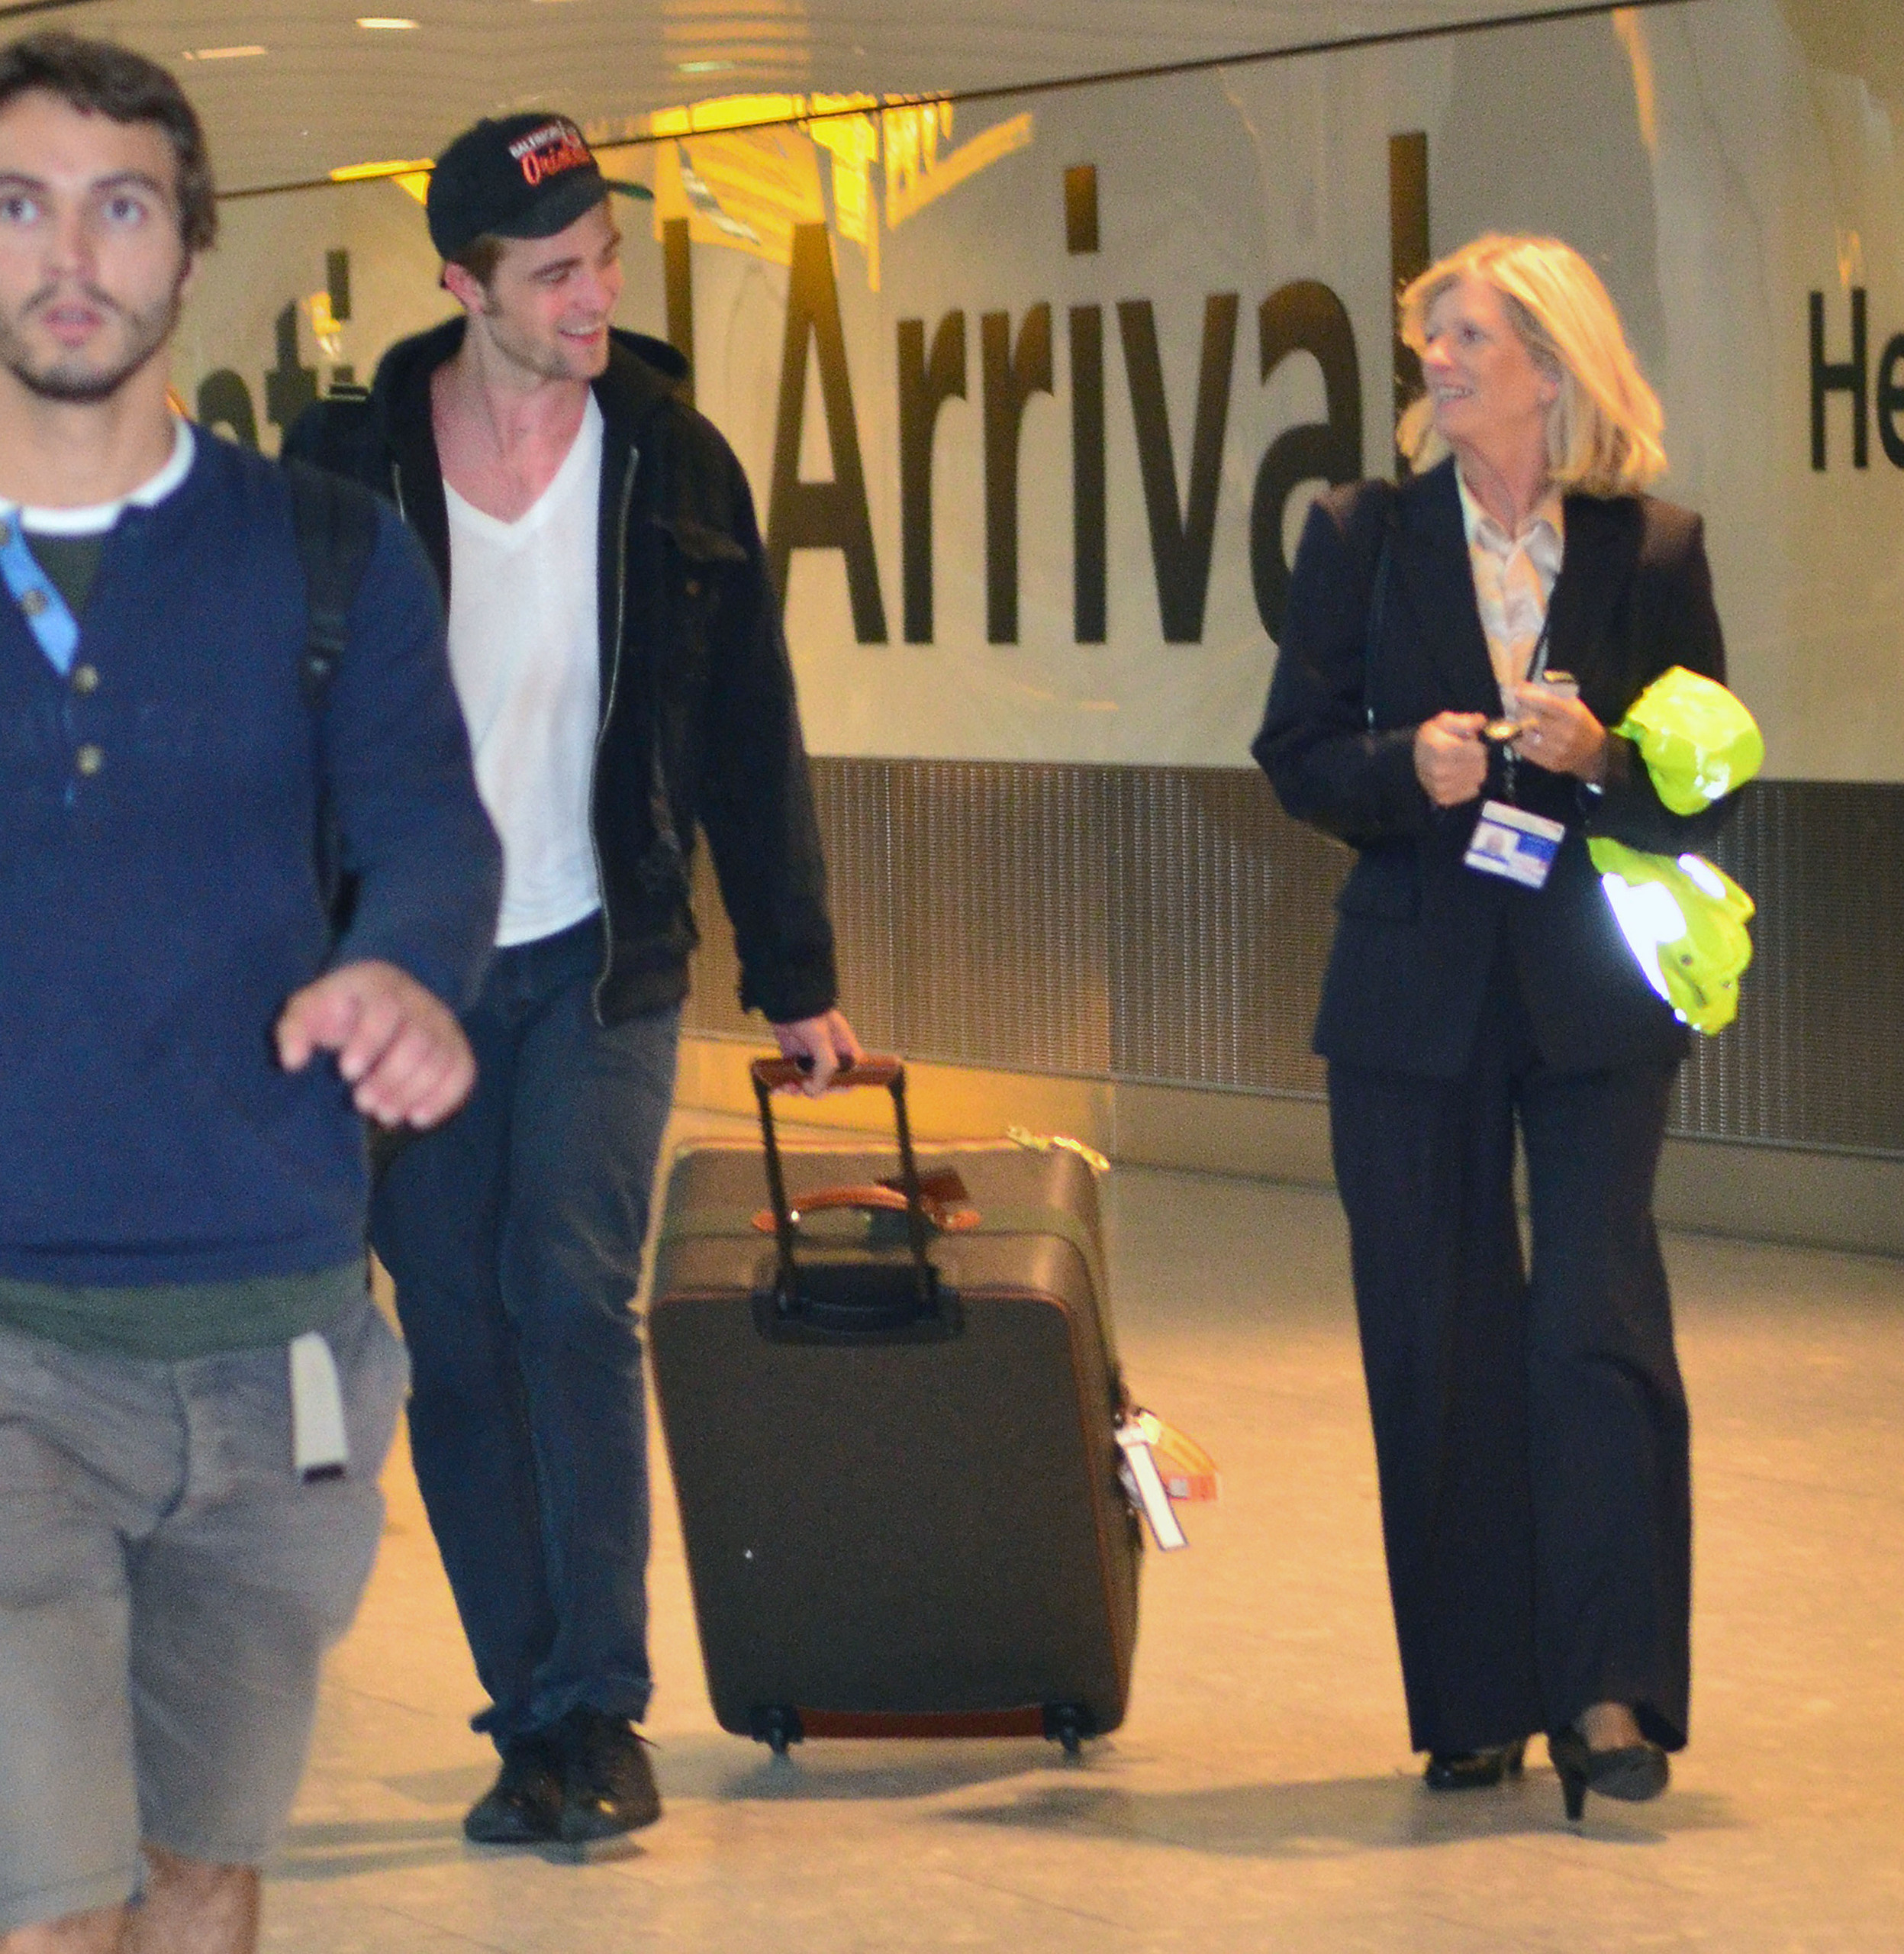 Untagged HQ's Of Robert Pattinson Arriving In Heathrow Airport Luân Đôn (Sept 4th)